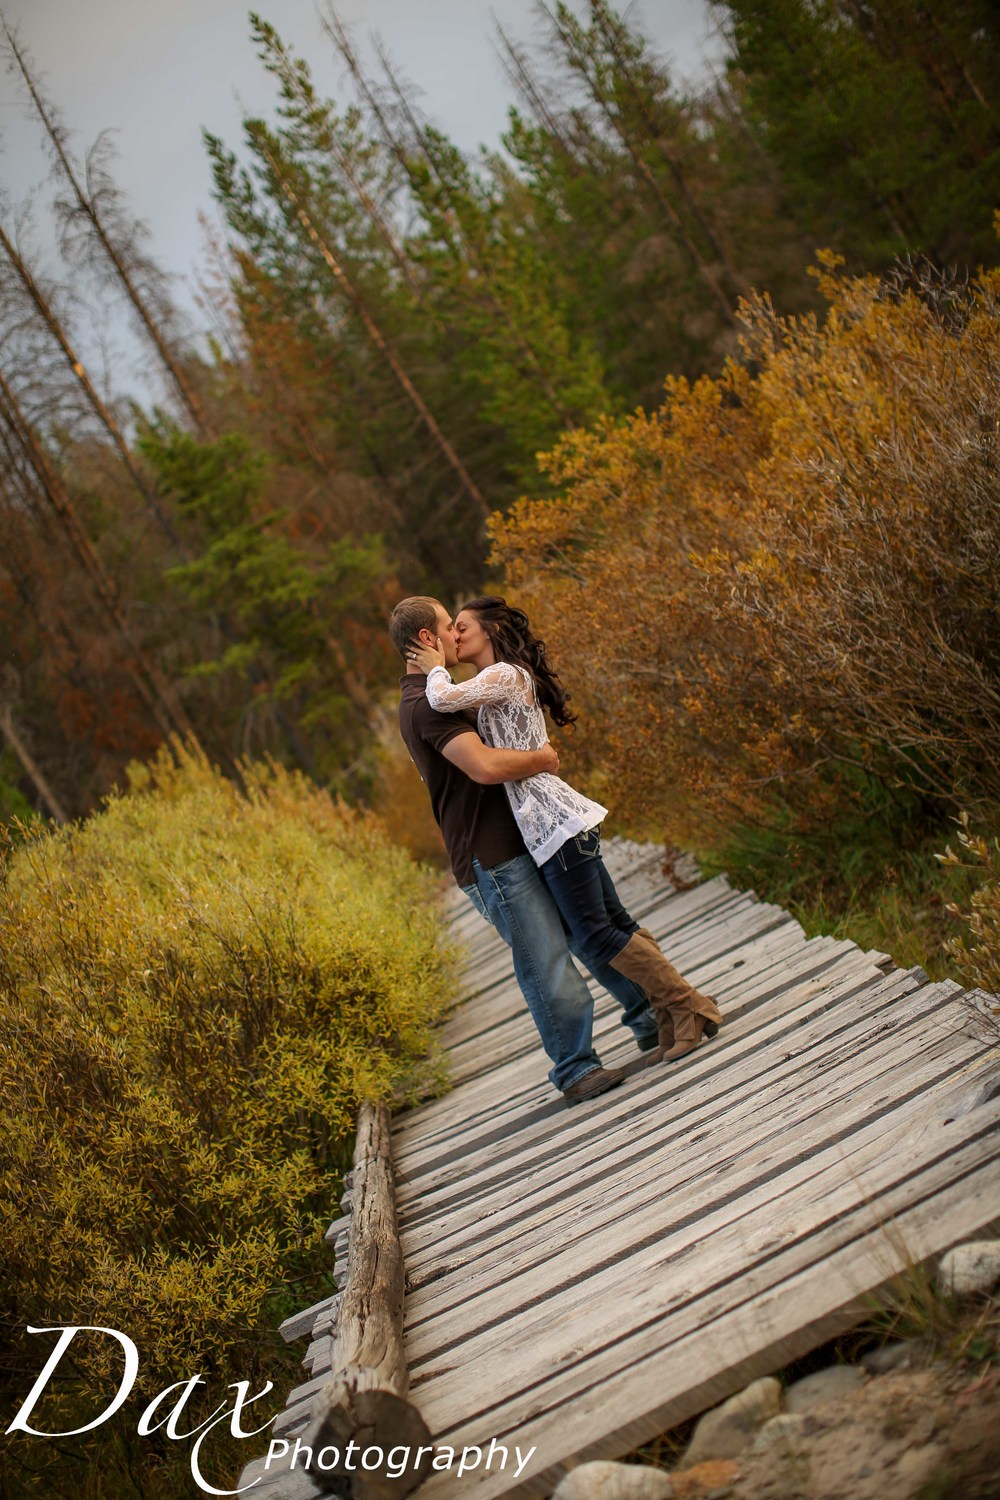 wpid-Montana-photographer-Engagement-Portrait-47511.jpg